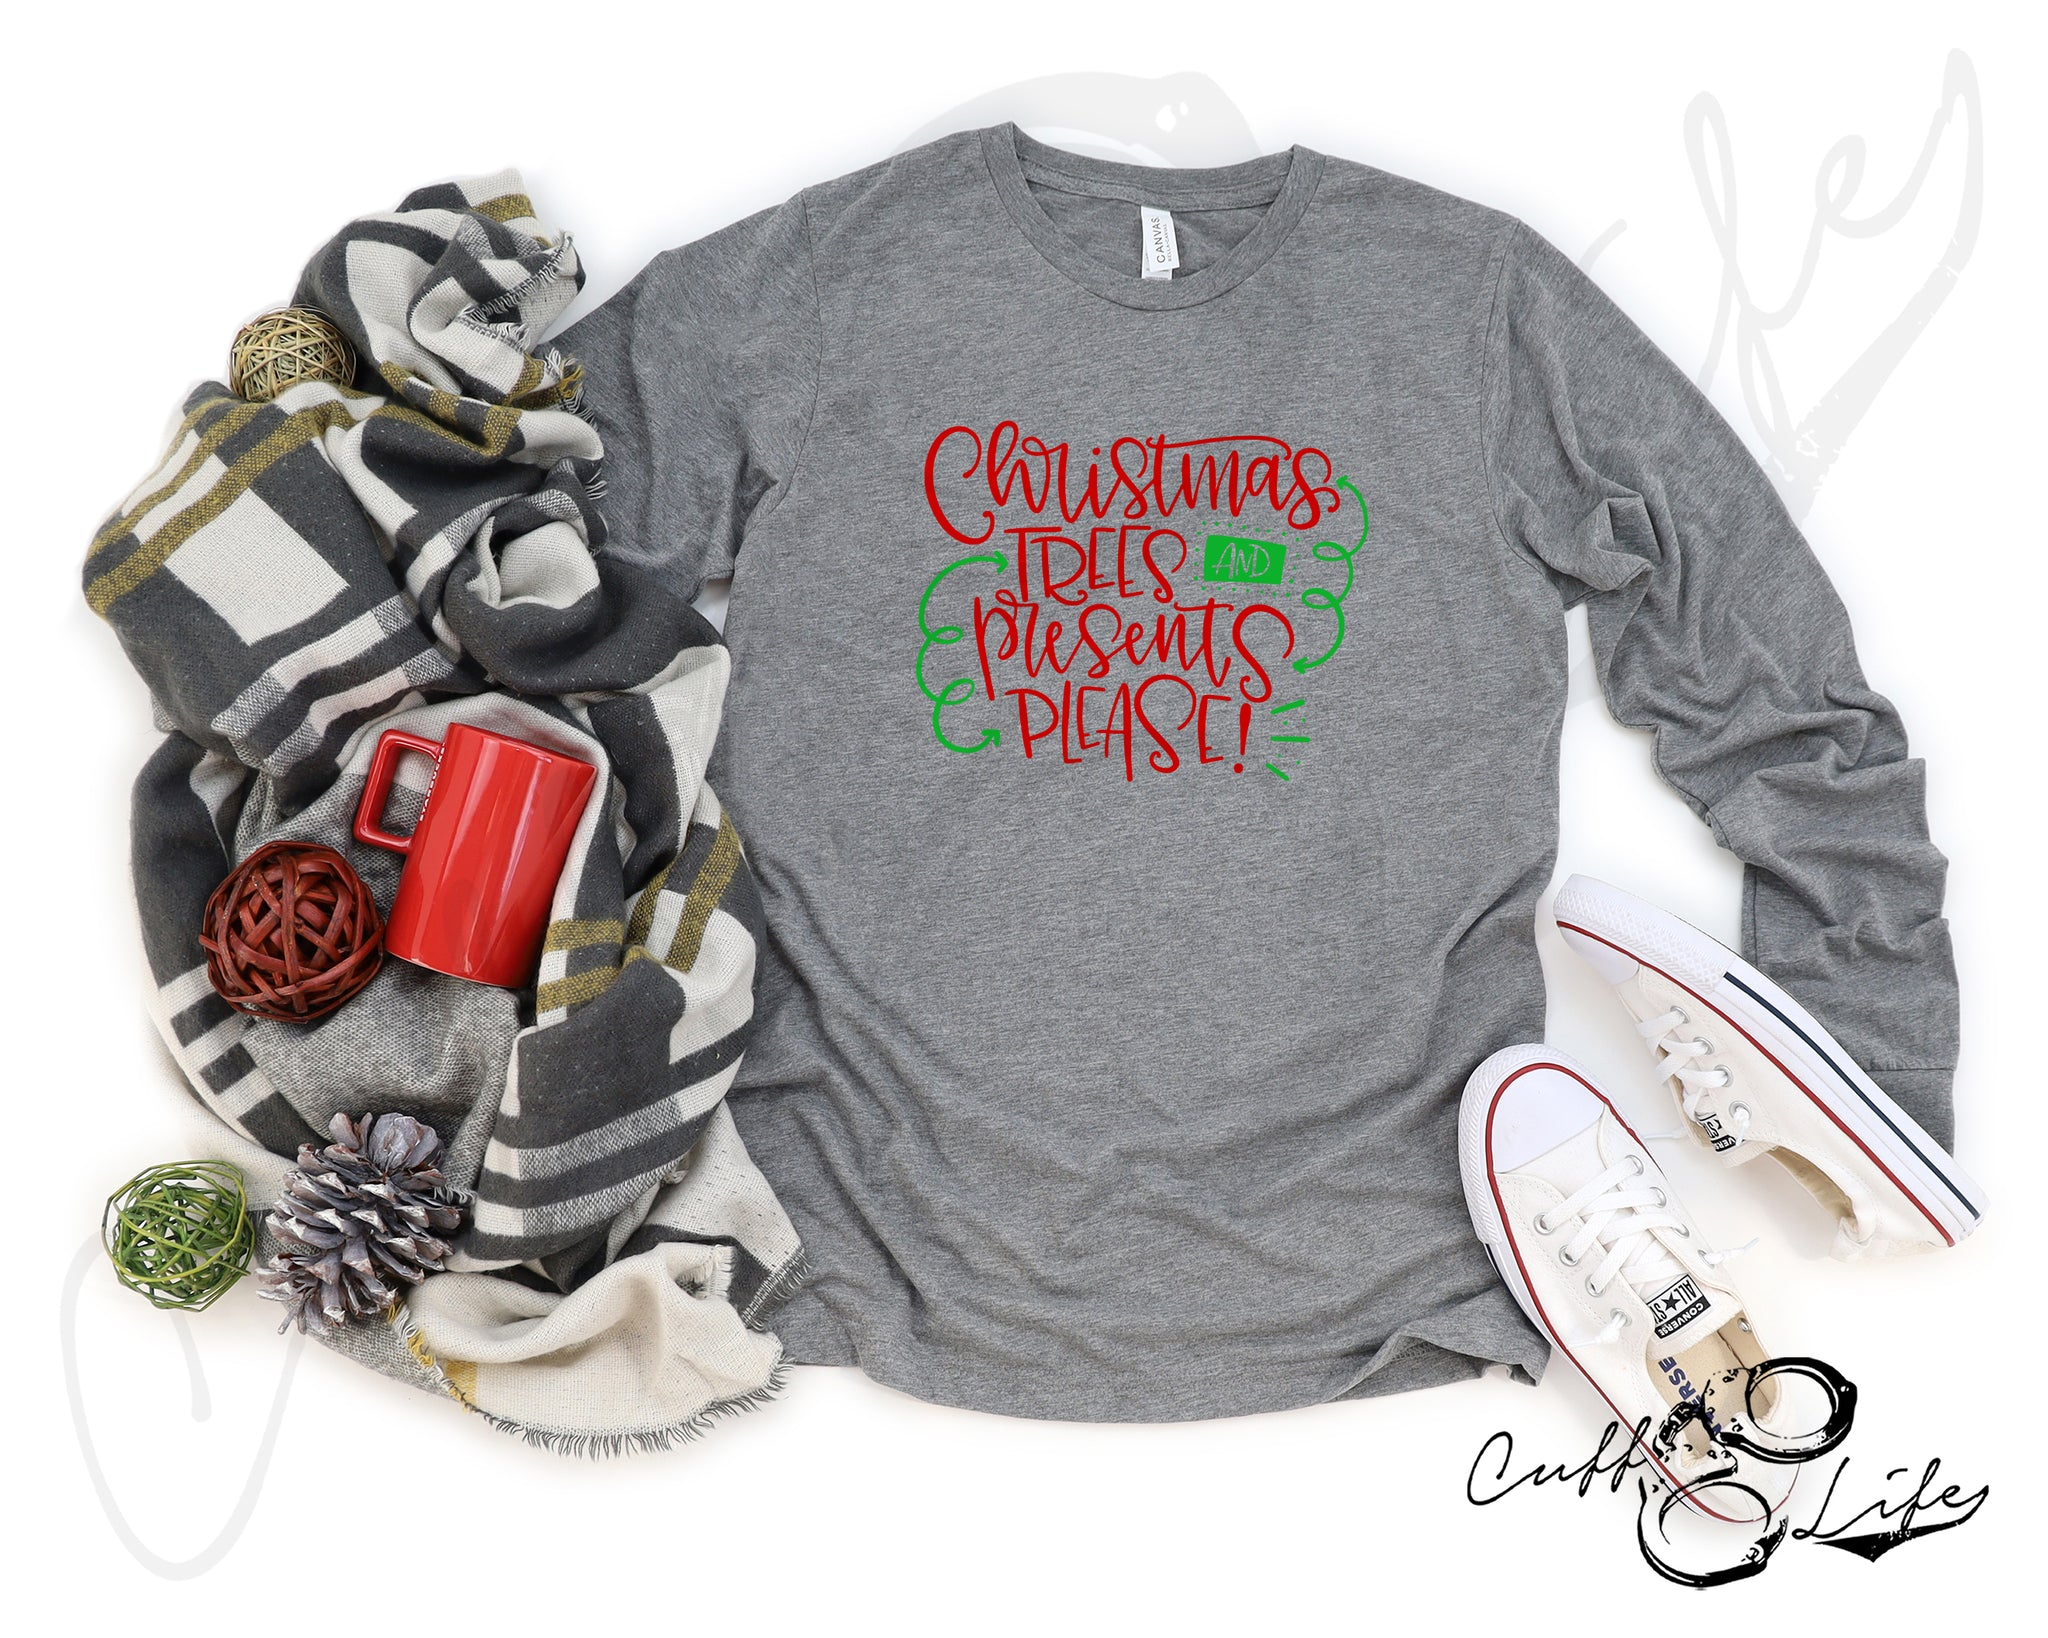 Christmas Trees and Presents Please - Long Sleeve Tee